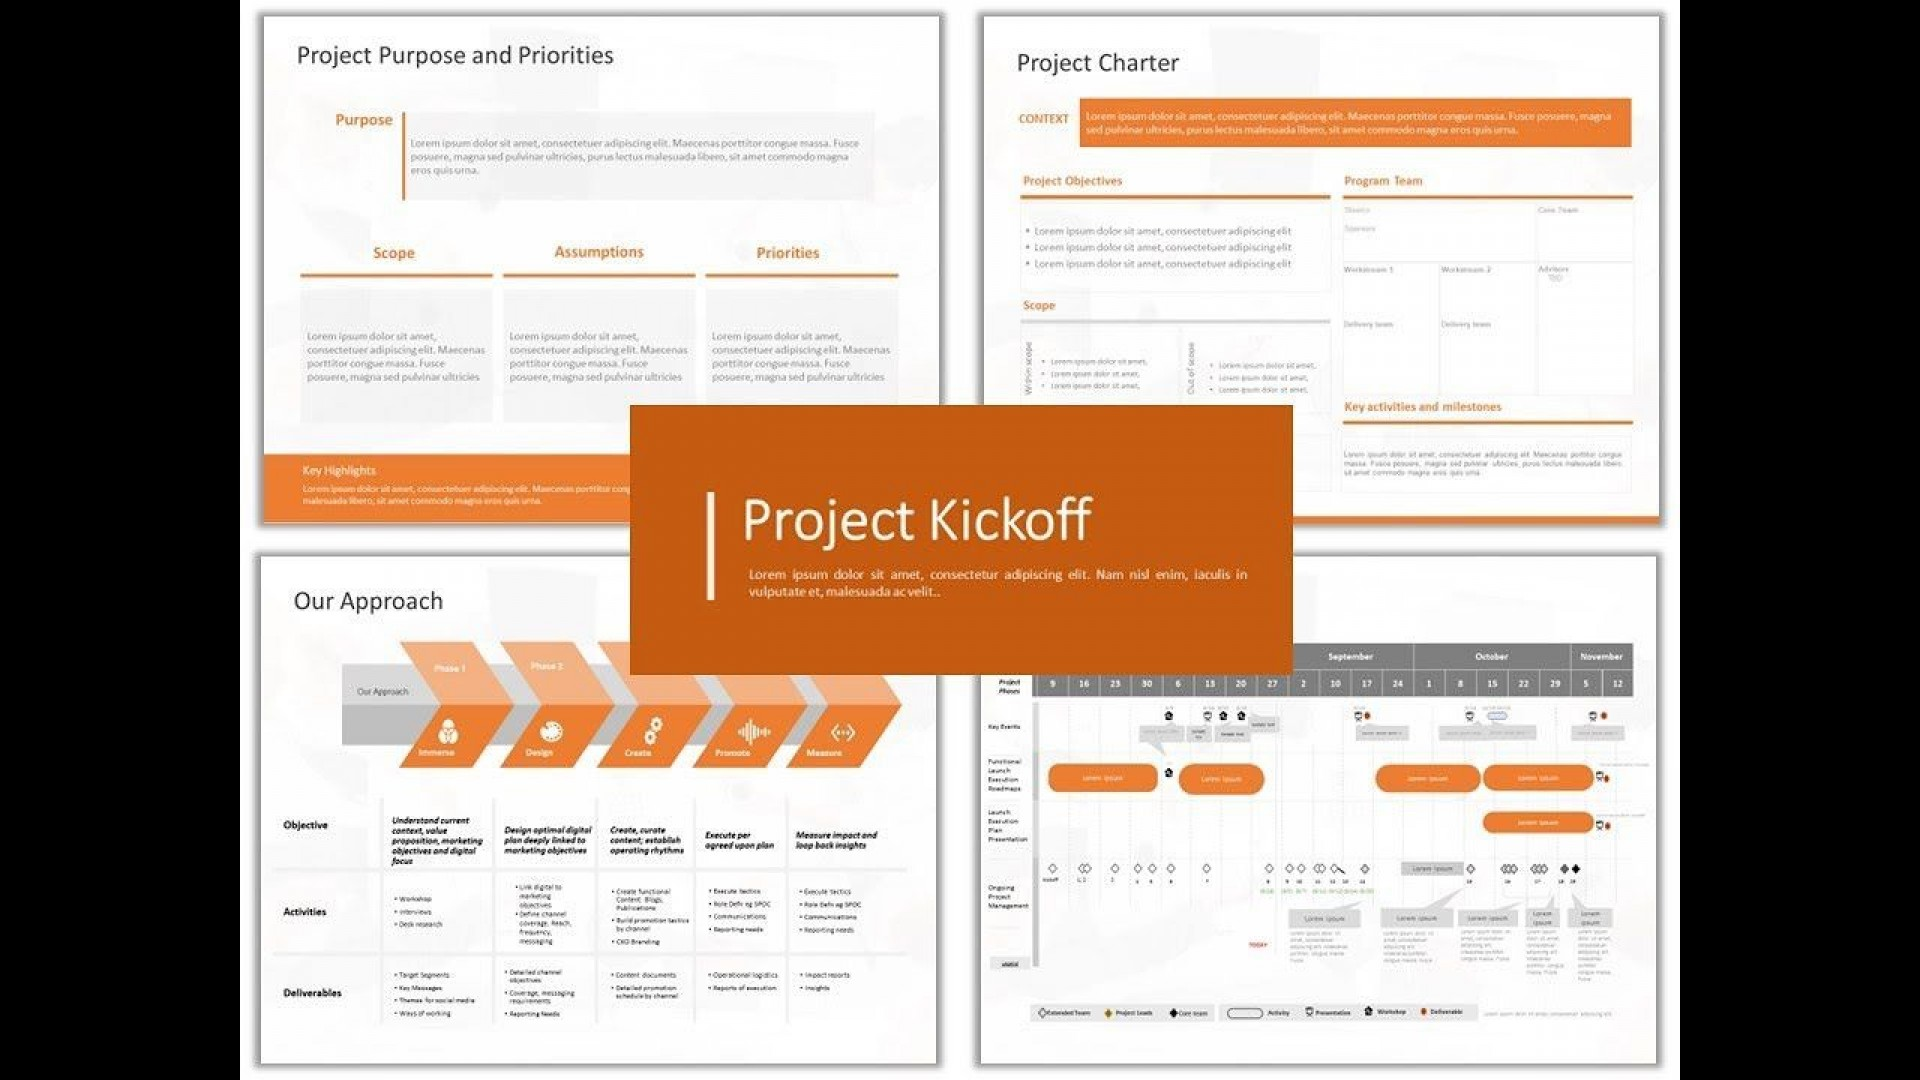 004 Rare Project Kick Off Email Template Image  Meeting Invite1920